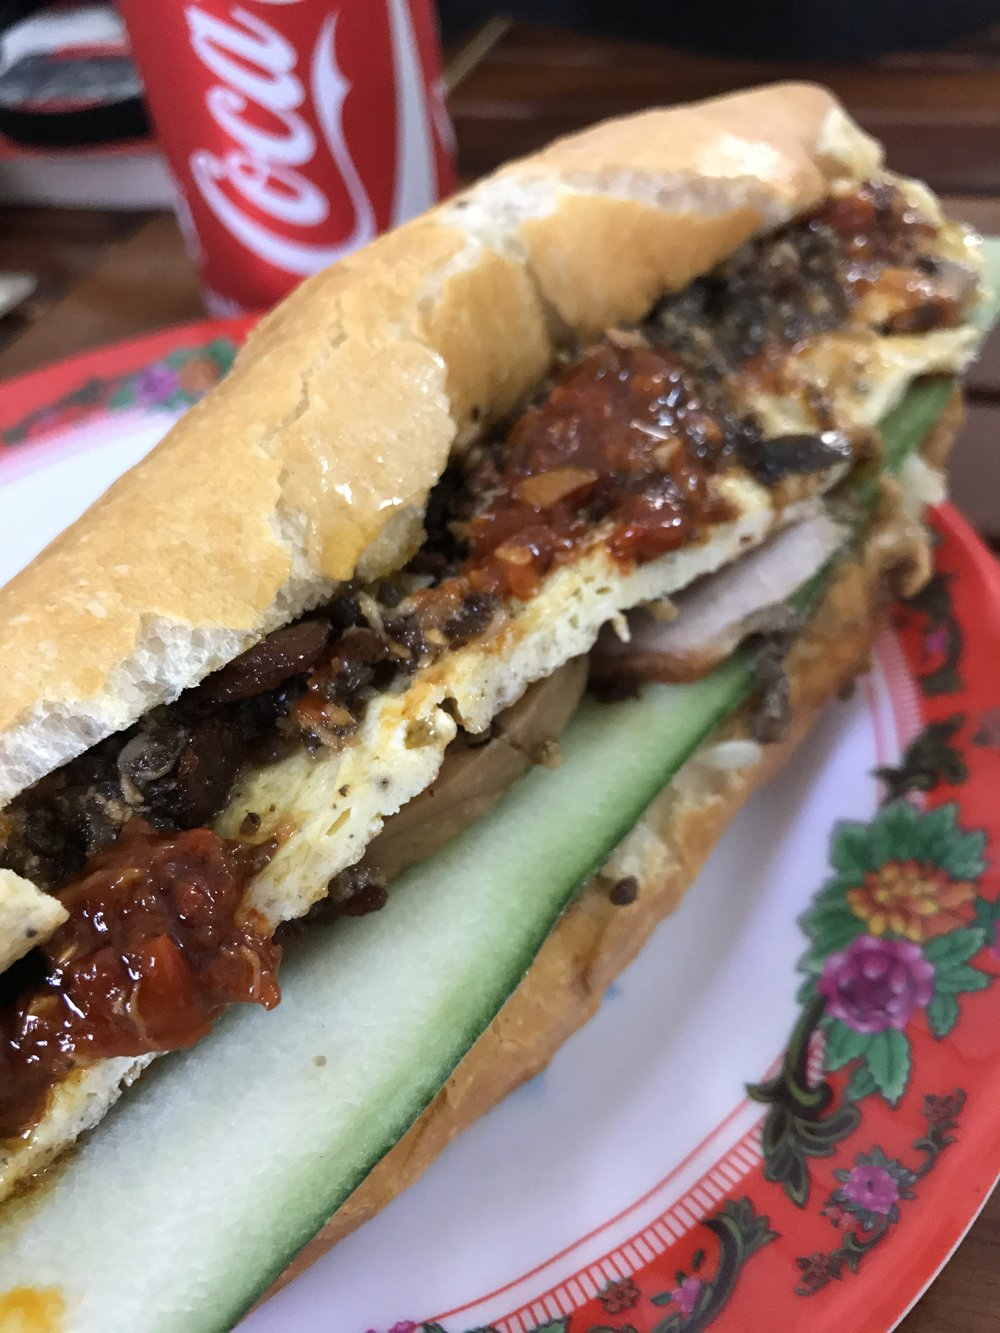 The Queen Banh Mi